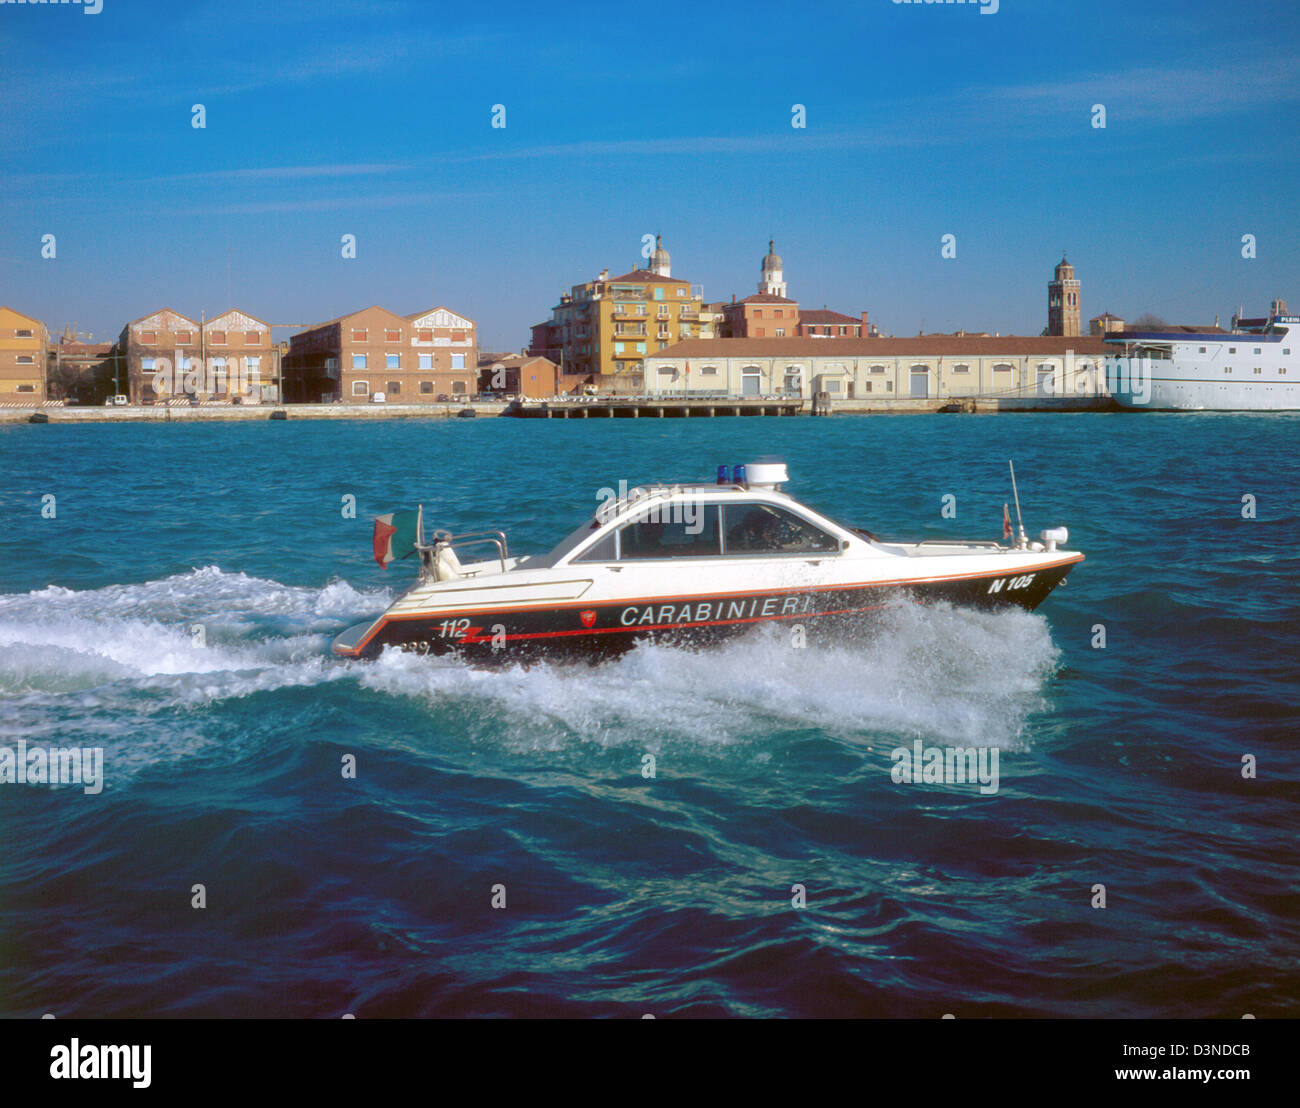 (FILE) - A motor boat of the Italian police (carabinieri) is pictured at a waterway in Venice, Italy, February 2005.Photo: Stock Photo